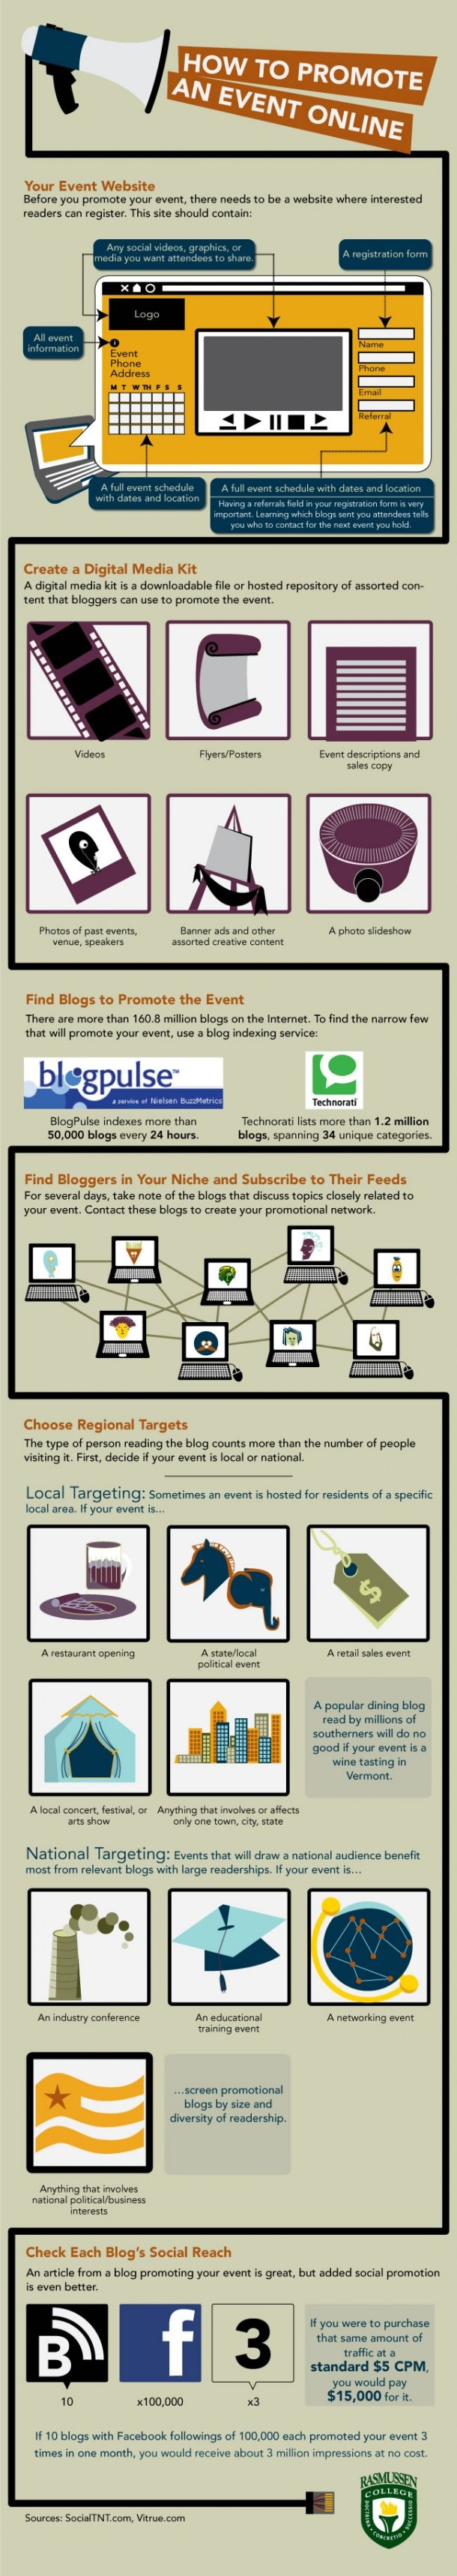 How To Promote An Event Online - #INFOGRAPHIC